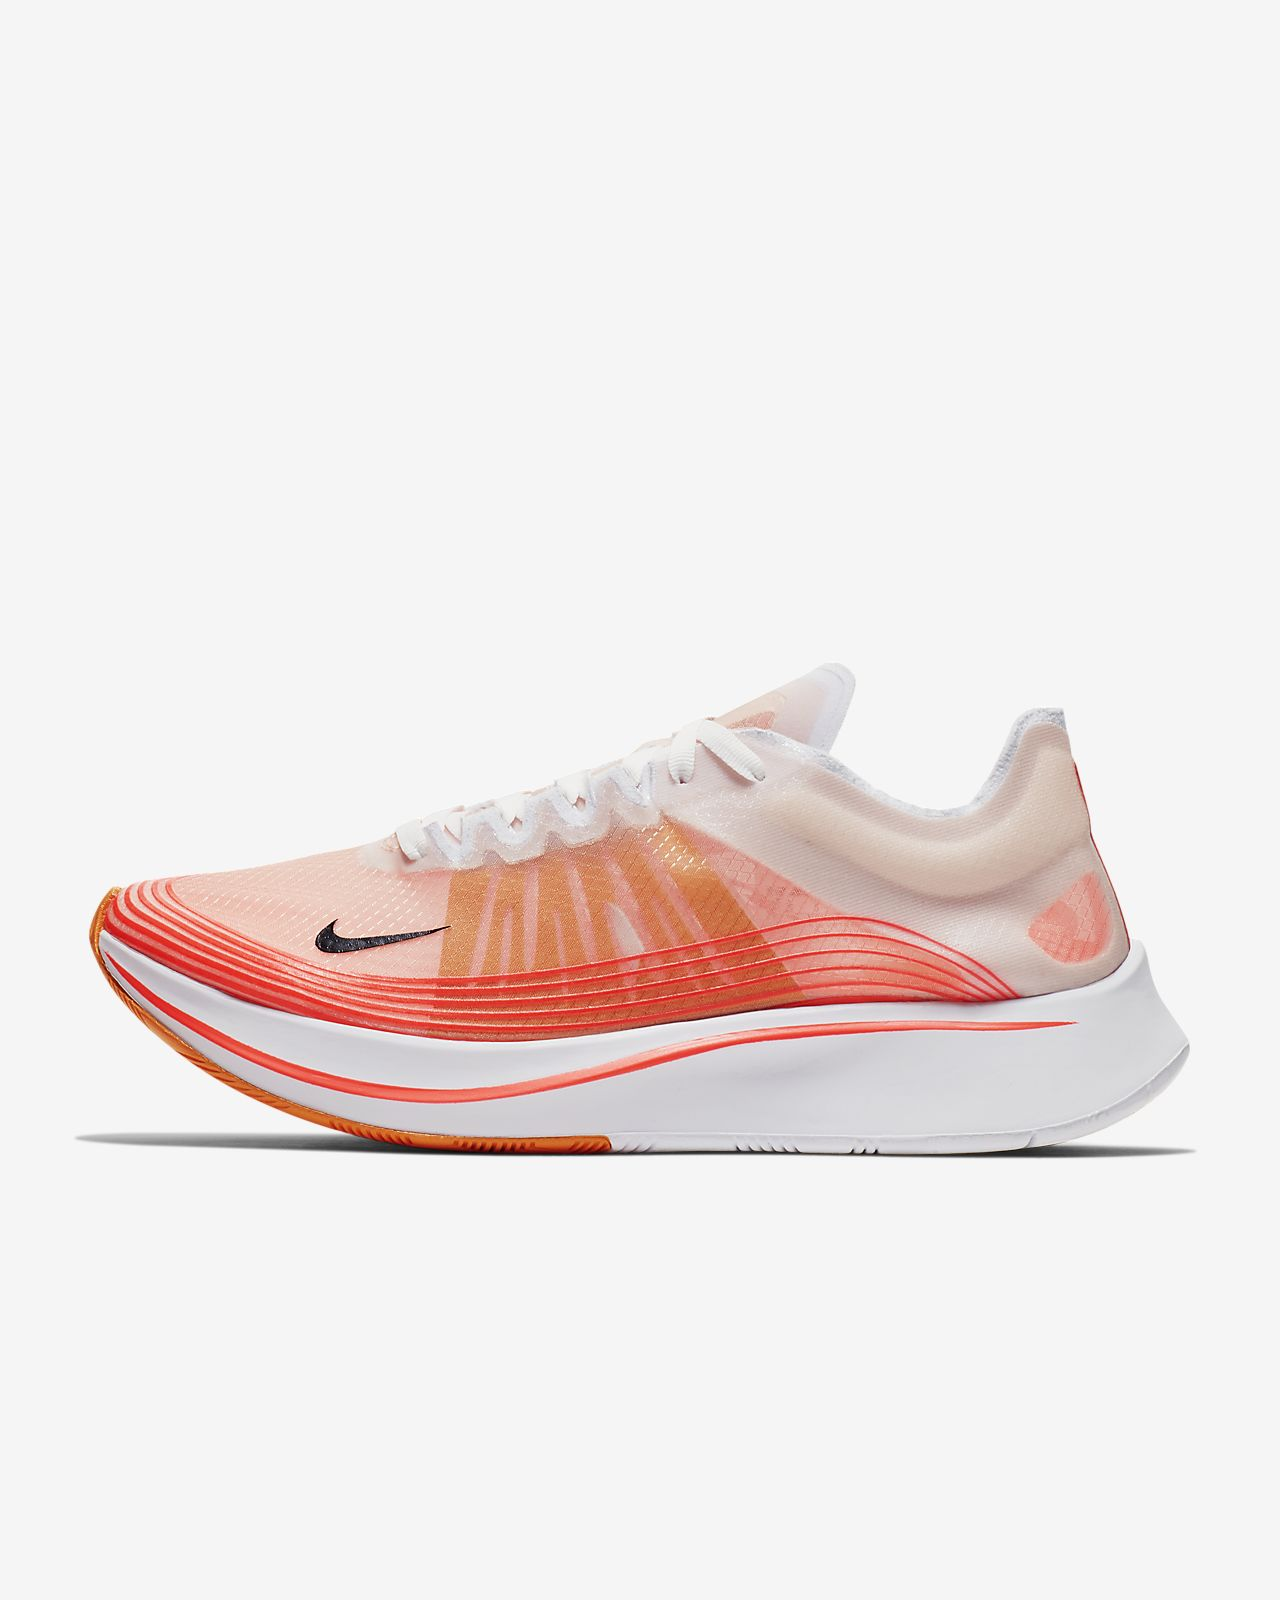 74e543dc28f28b Nike Zoom Fly SP Women s Running Shoe. Nike.com